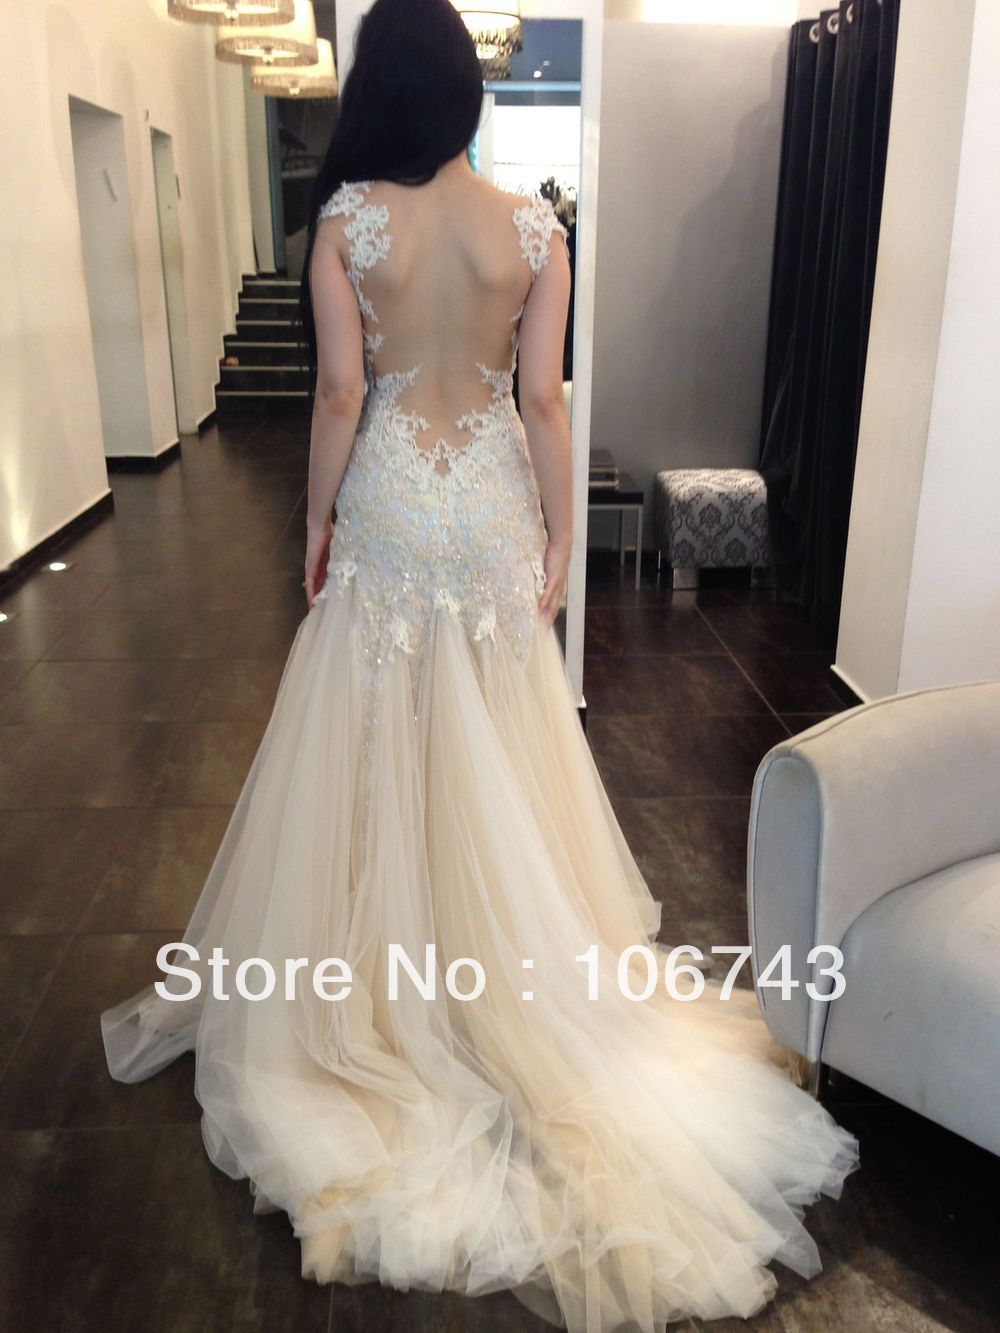 Free shipping 2016 new design custom sheer appliques for Wedding dress free shipping